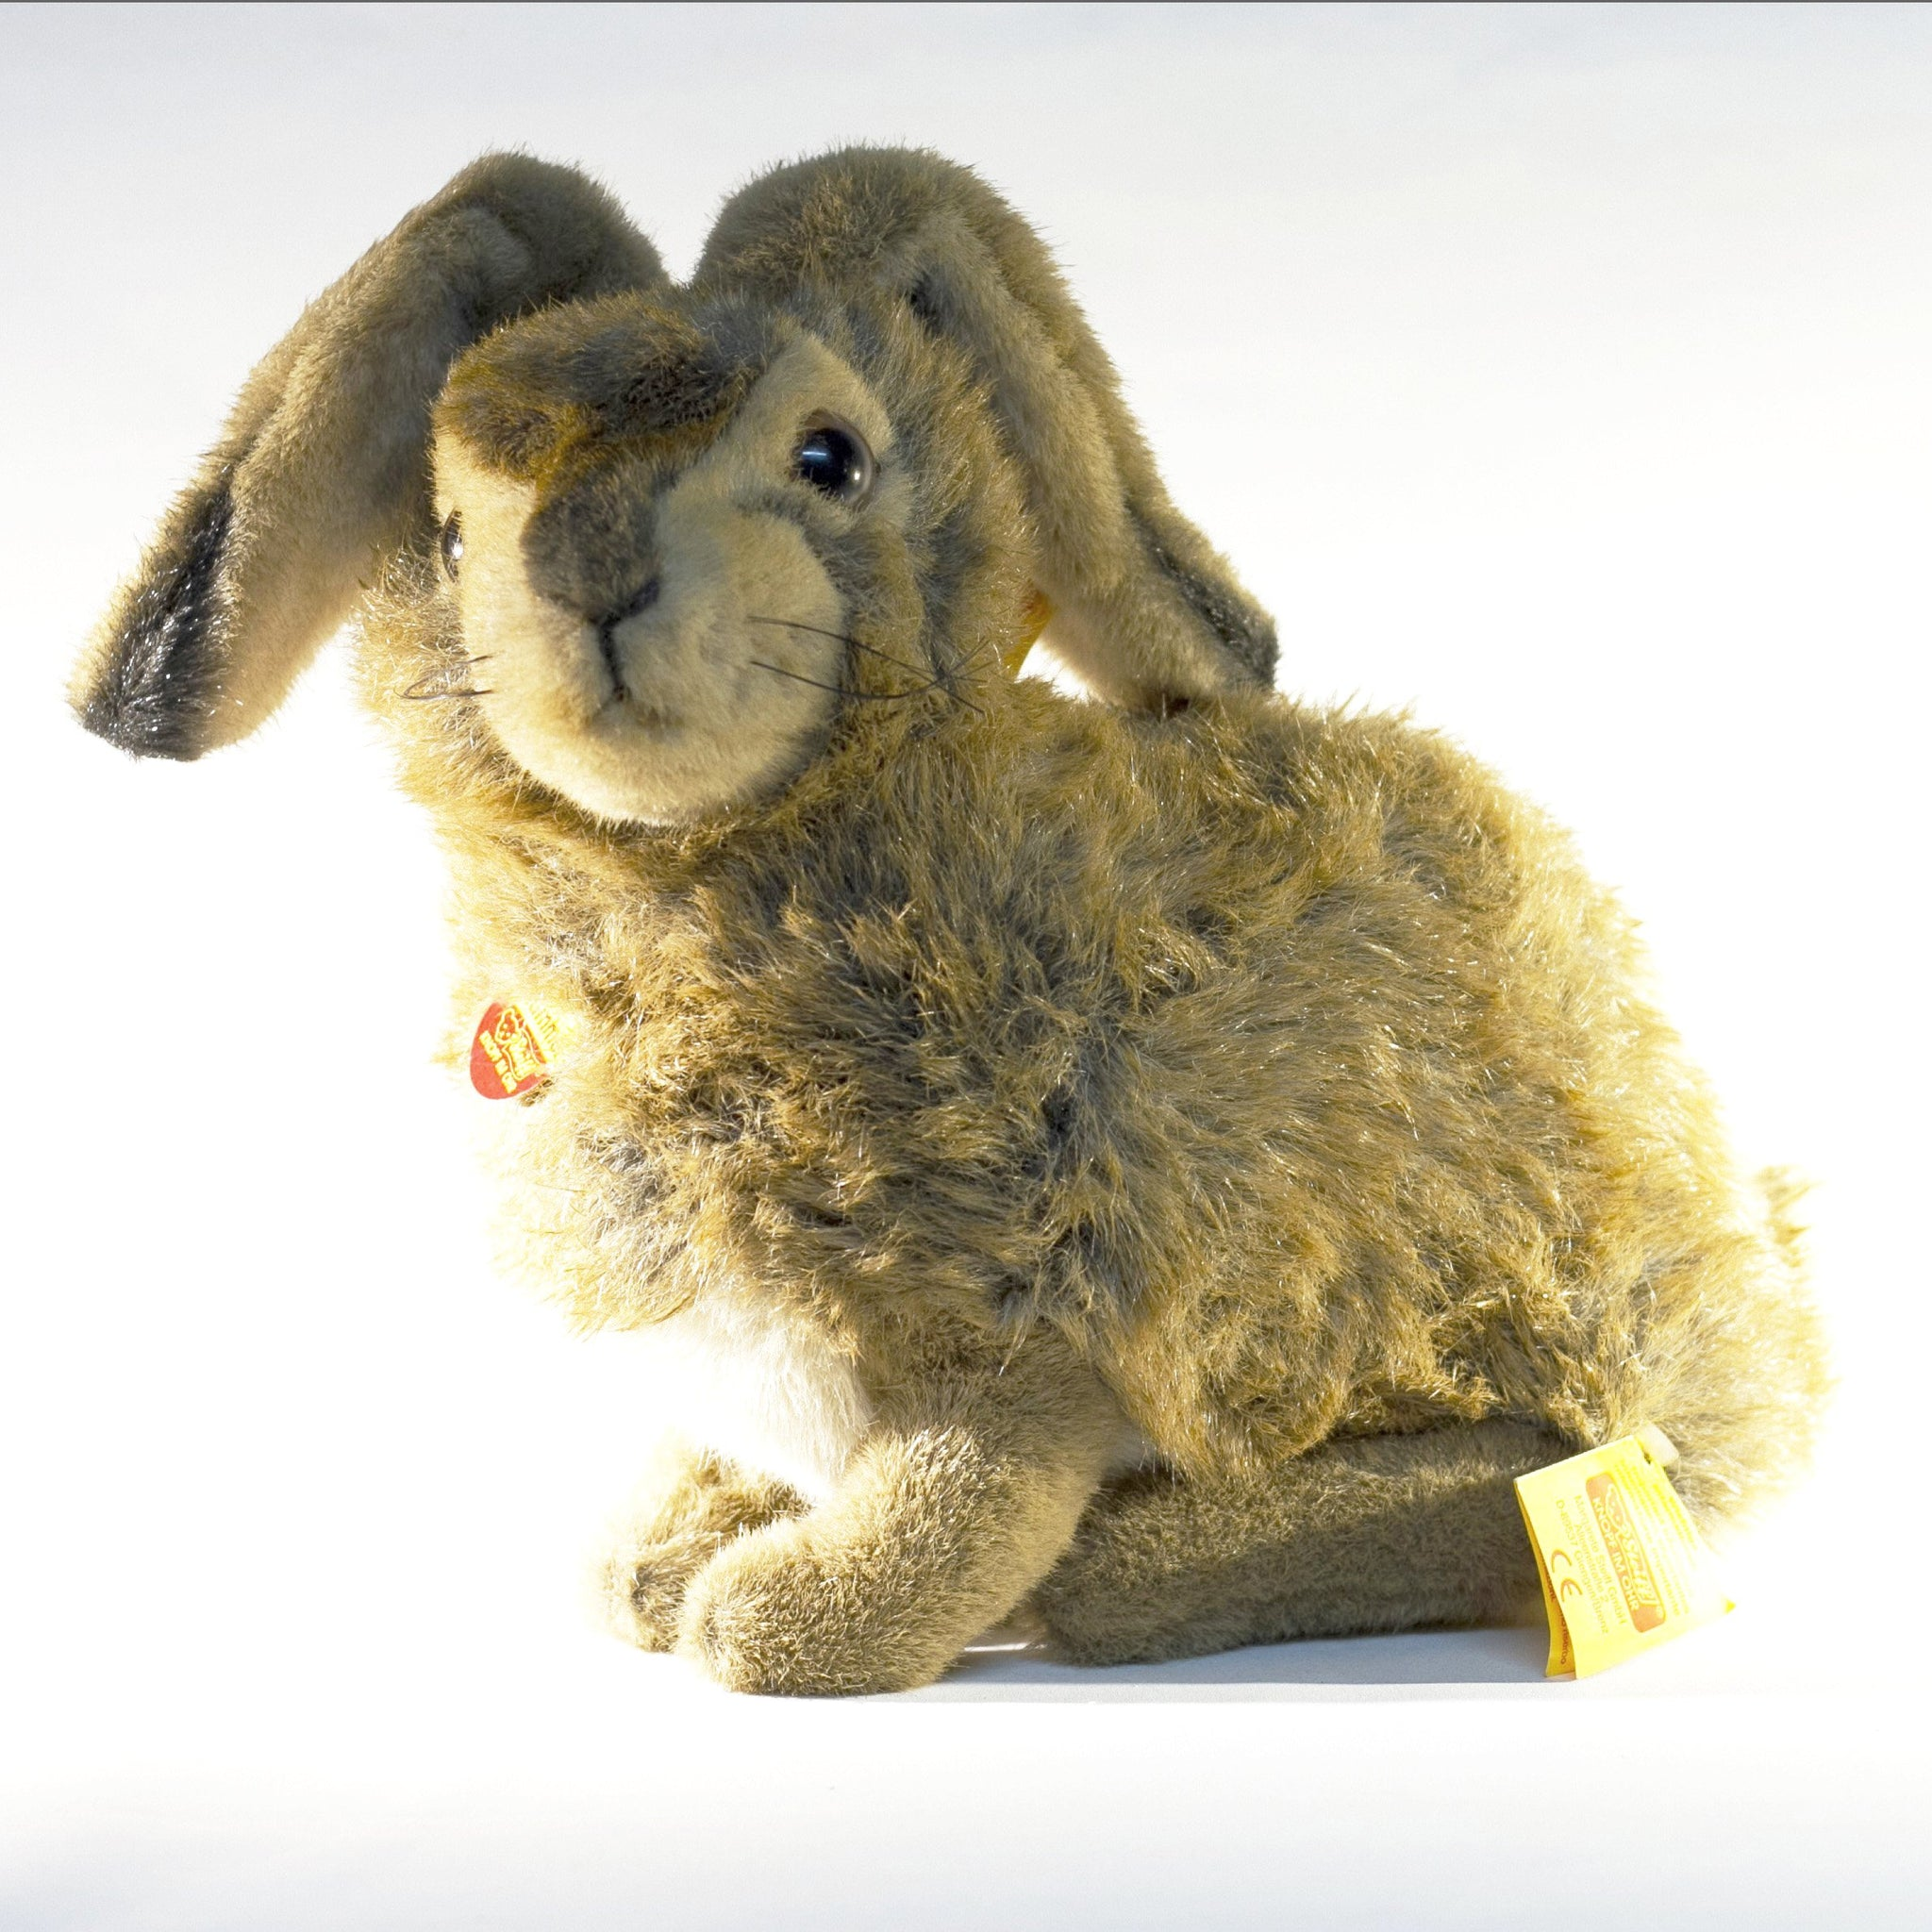 Lifesize STEIFF MÜMMEL RABBIT 077654 Circa 1980s with Original Price Tag